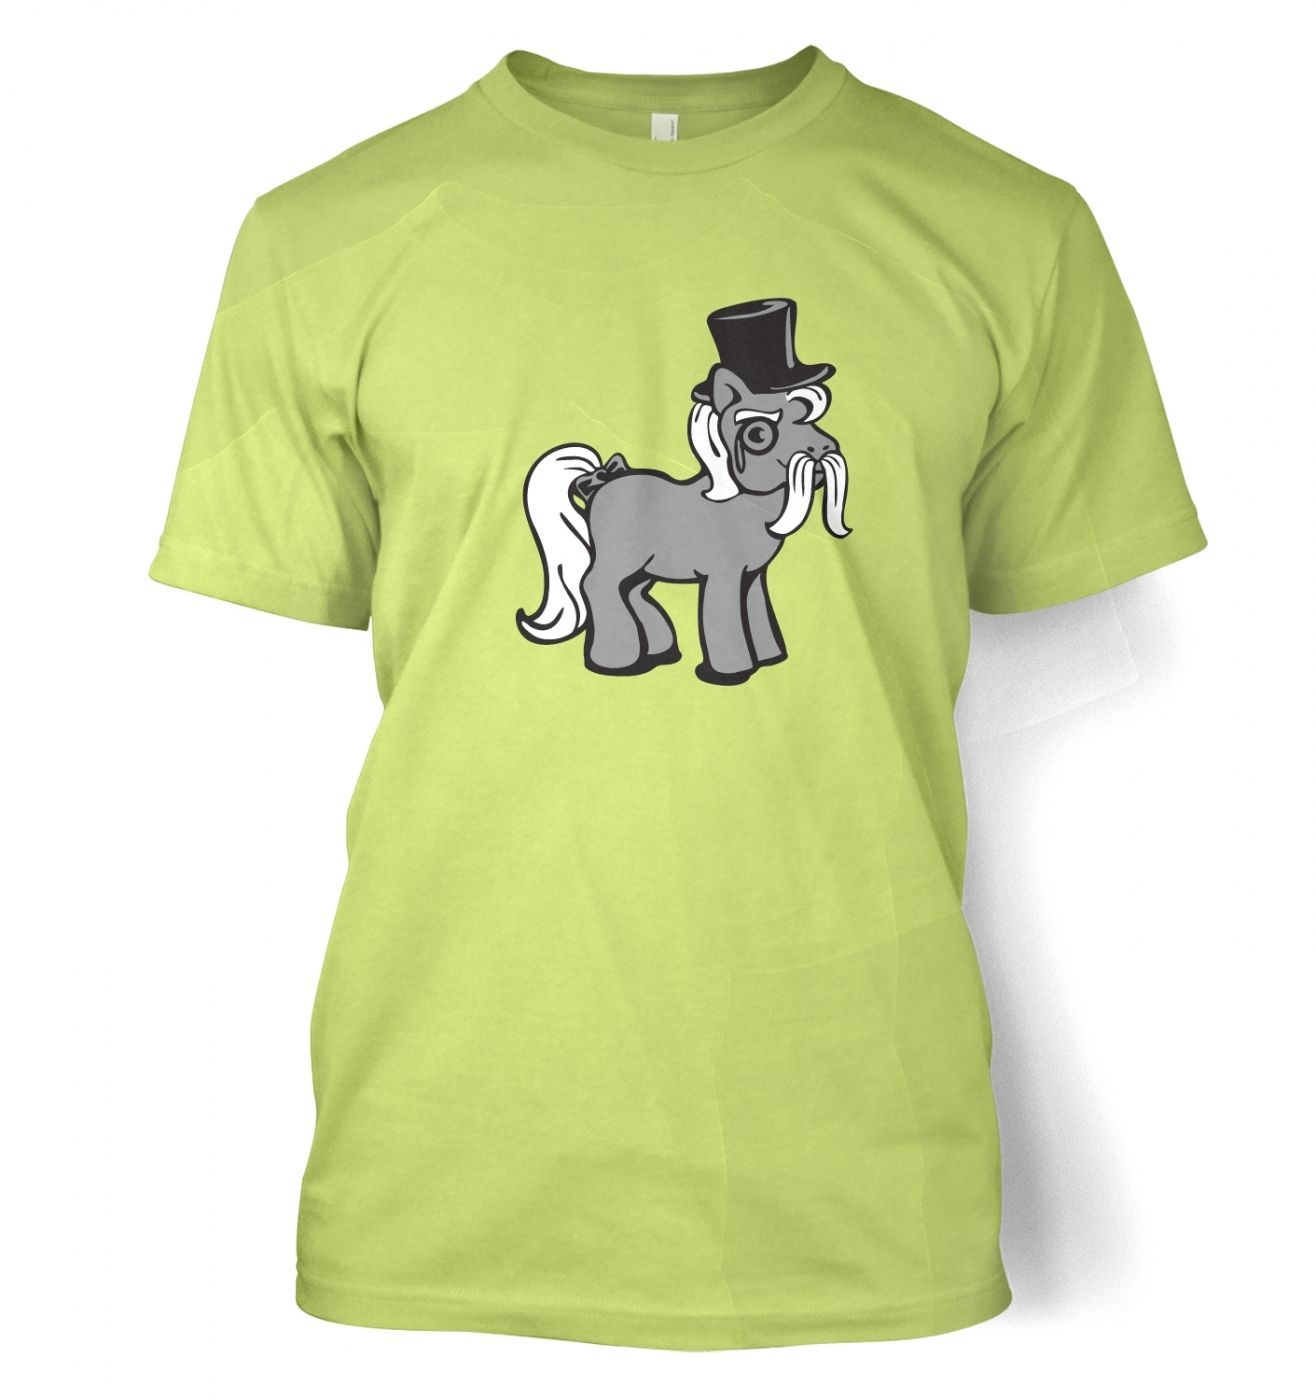 Top Hat Pony t-shirt - Inspired by My little Pony